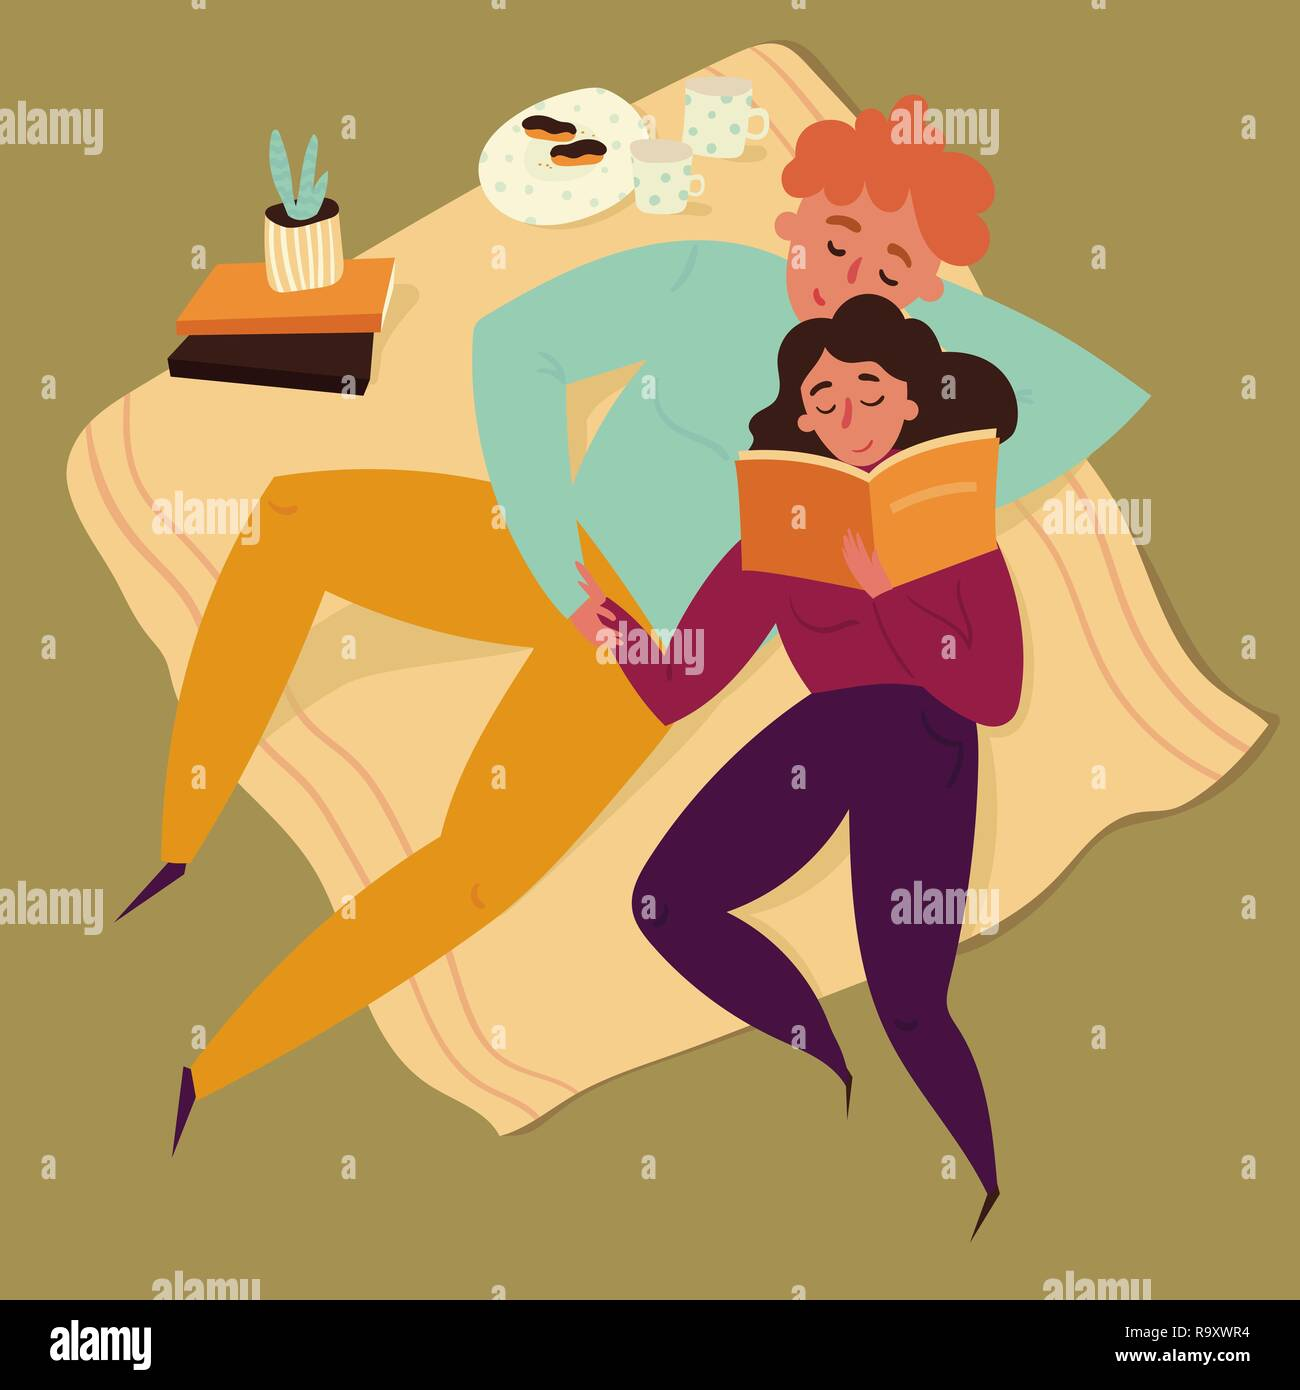 Boy and girl couple reading storybook illustration - Stock Vector